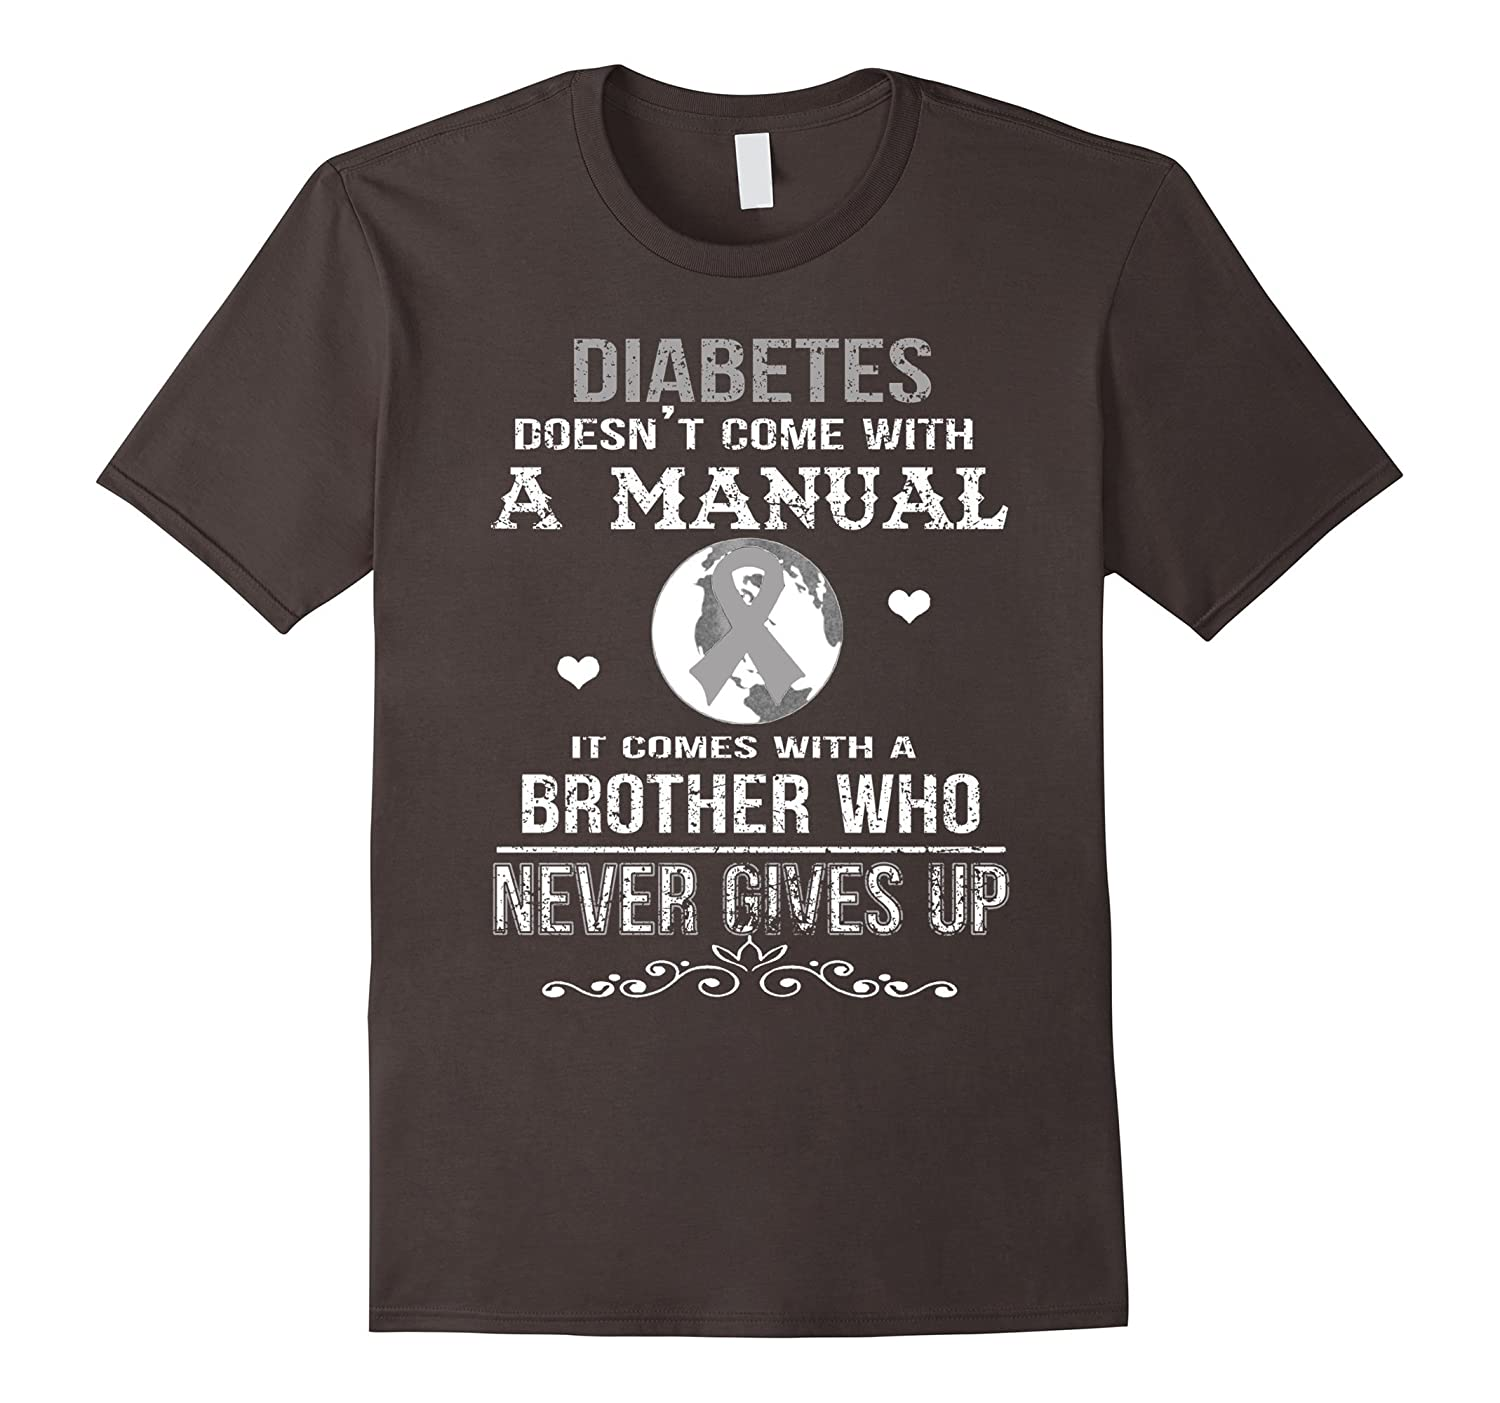 Diabetes comes with a brother who never gives up t shirt